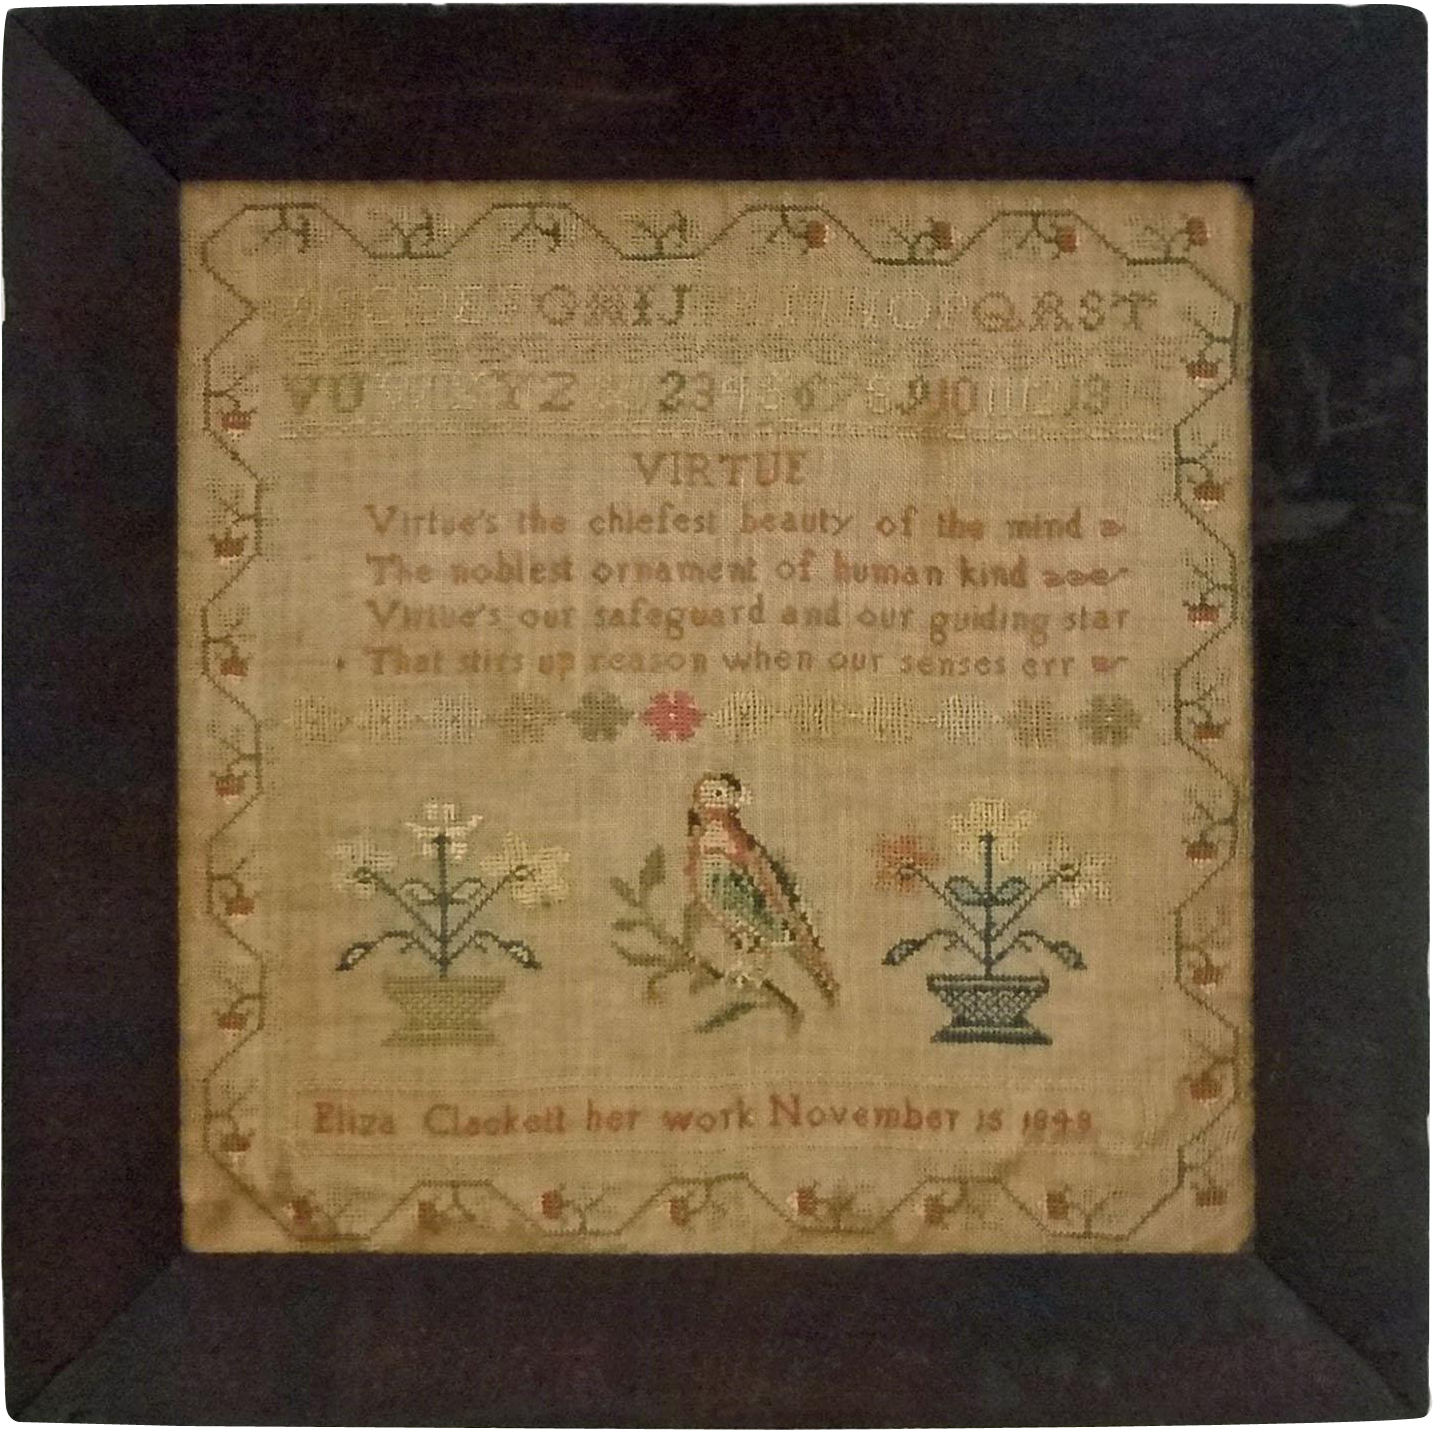 1843 Schoolgirl Needlework Sampler Antique Textile Parrot - 1843, New York